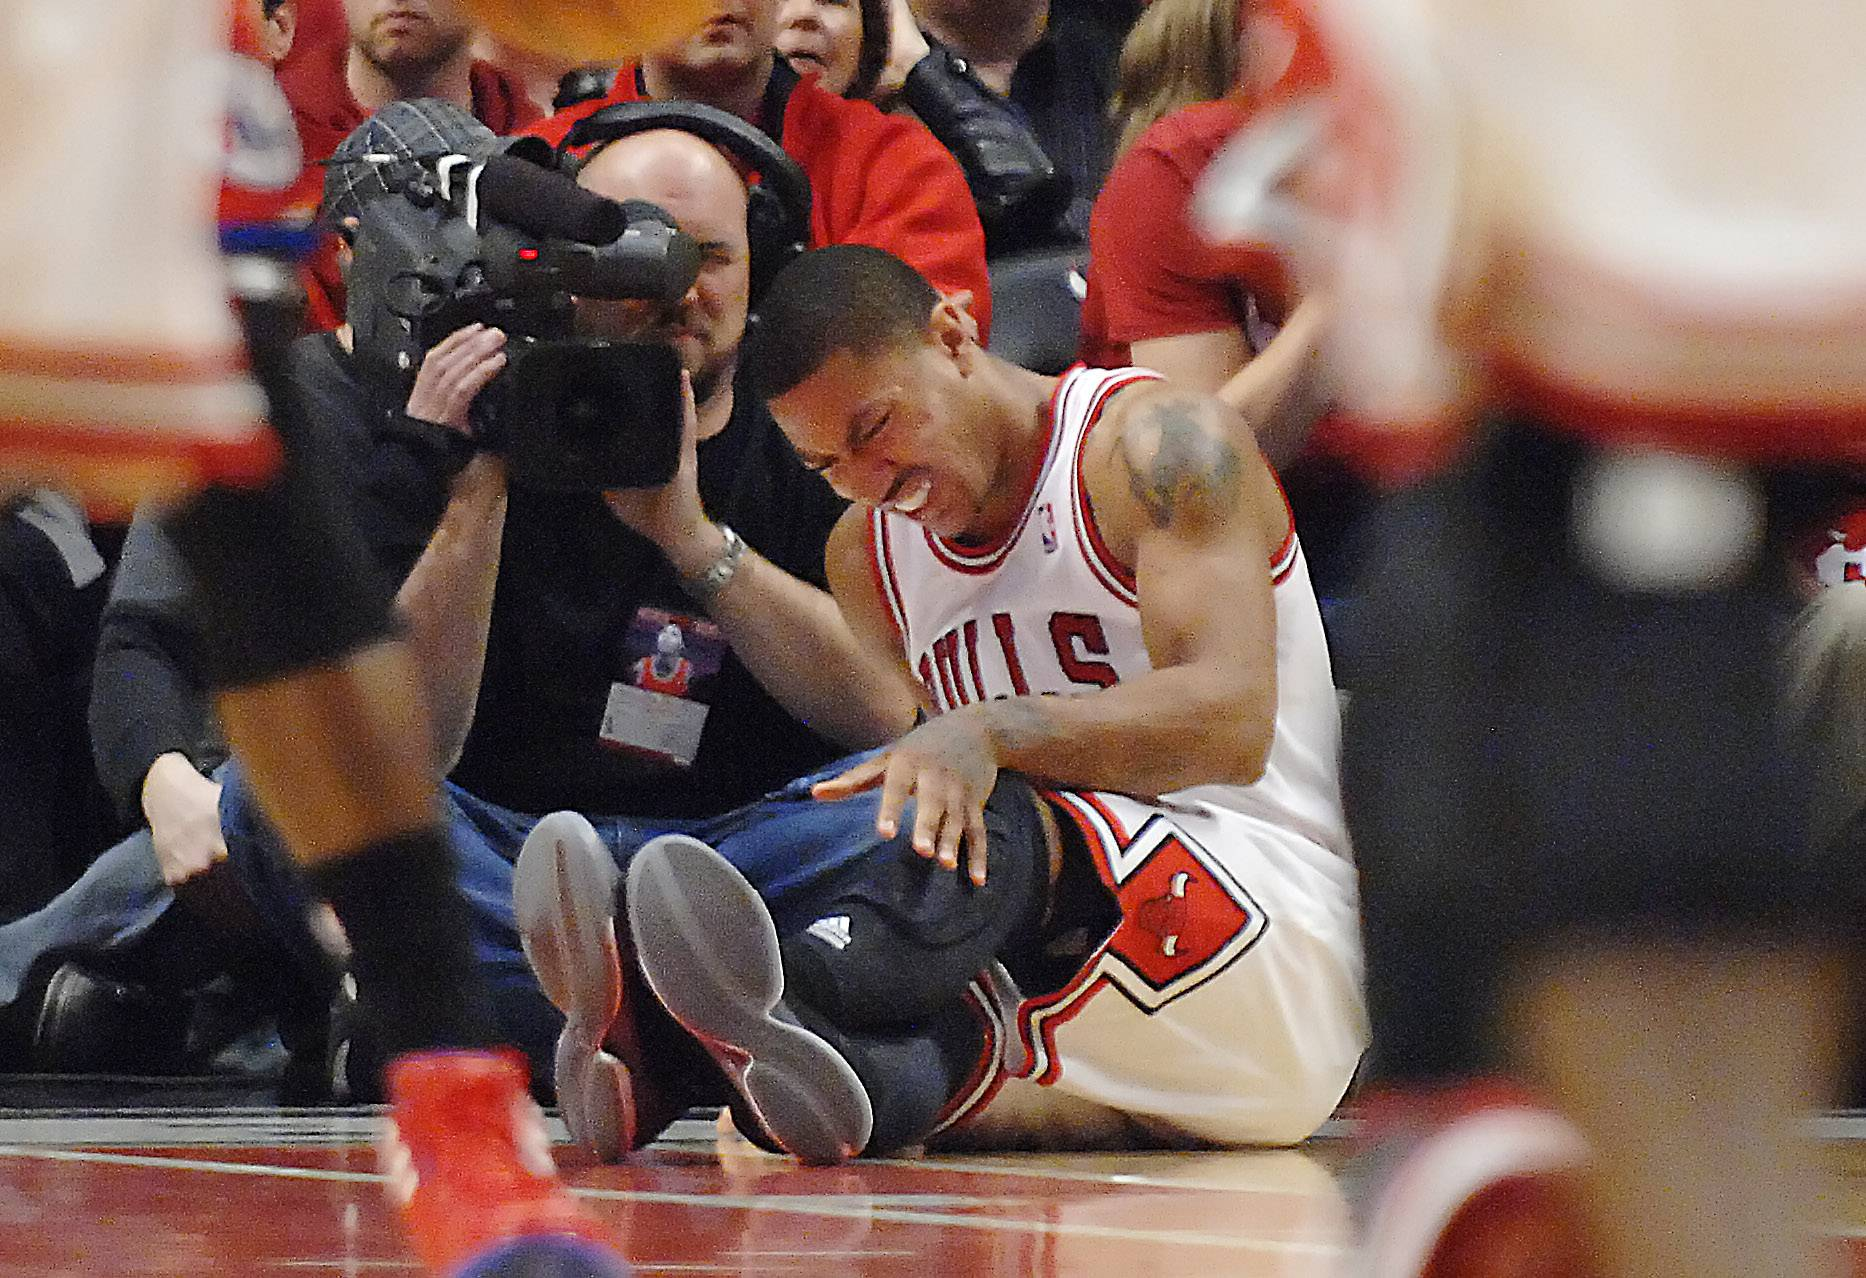 Report: Rose tears ACL, out for rest of season